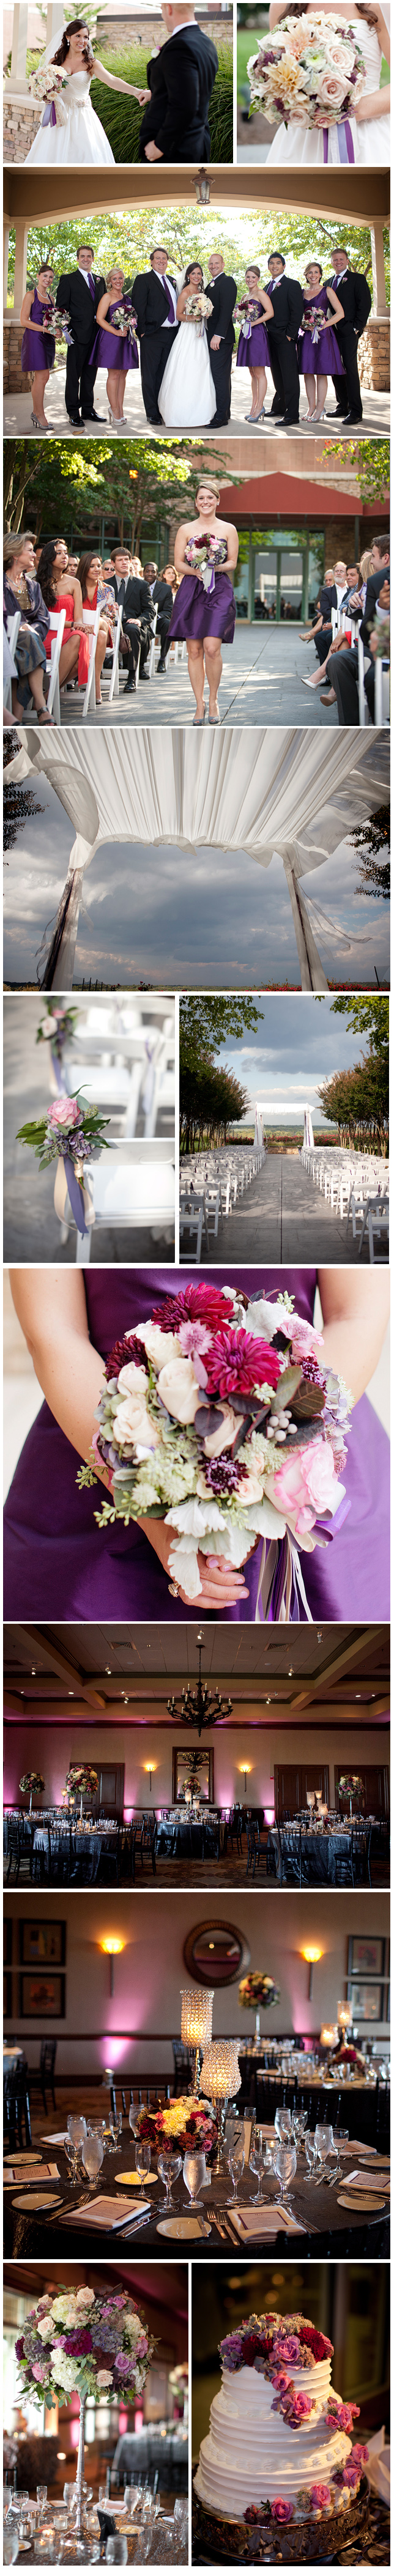 Rich jewel tones brought this Lansdowne Resort event to life.  Beautiful plums and purples against the deep wooden tones of The Clubhouse interior added an air of sumptuousness to the space.  A well-balanced contrast with the airy and bright ceremony held outdoors on the premises, the reception created an atmosphere rich with romance and warmth, uniting guests in their common celebration of the newlyweds. Images by Kristen Gardener.